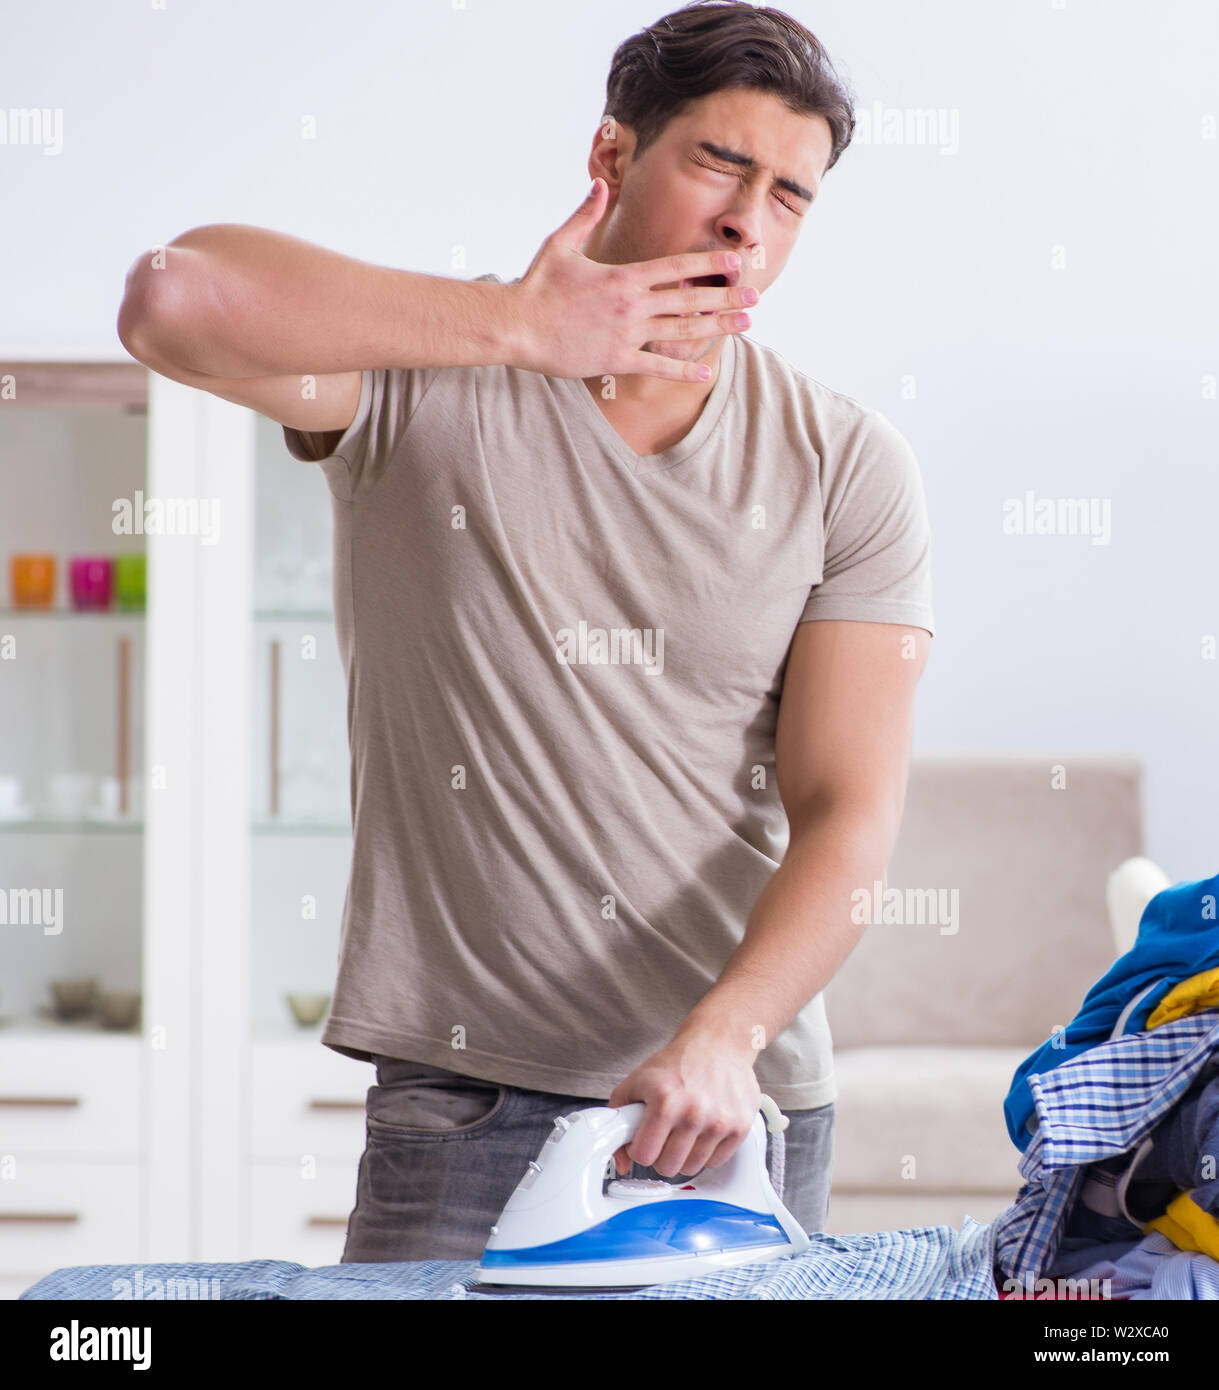 The young man husband doing clothing ironing at home - Stock Image